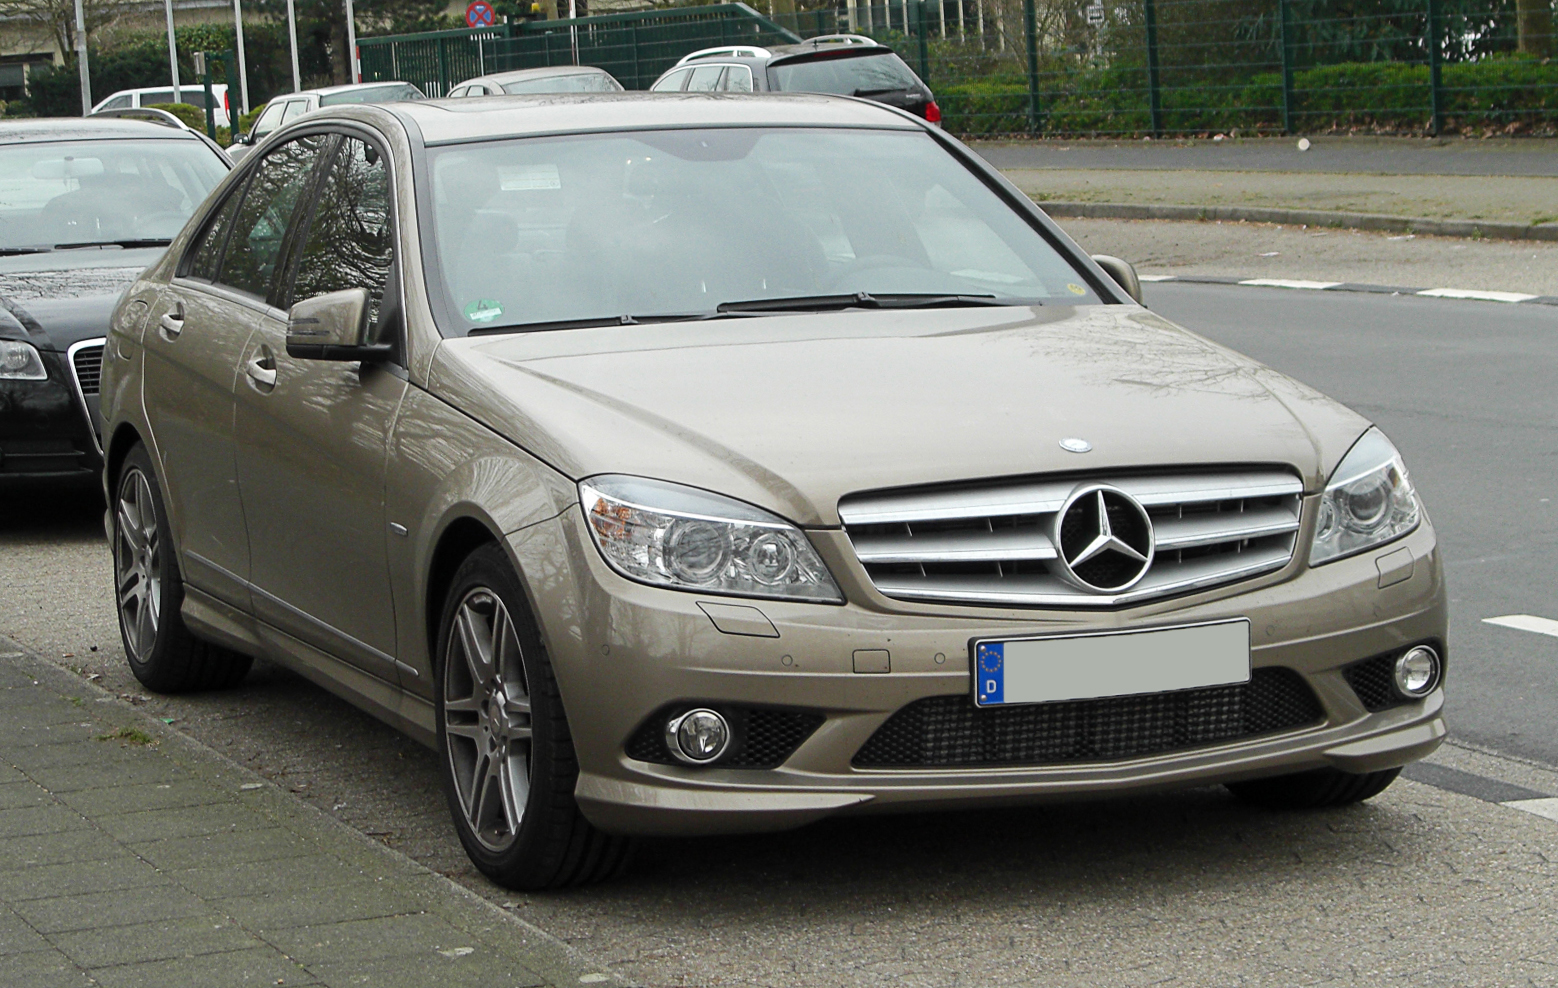 Mercedes-benz cdi photo - 9